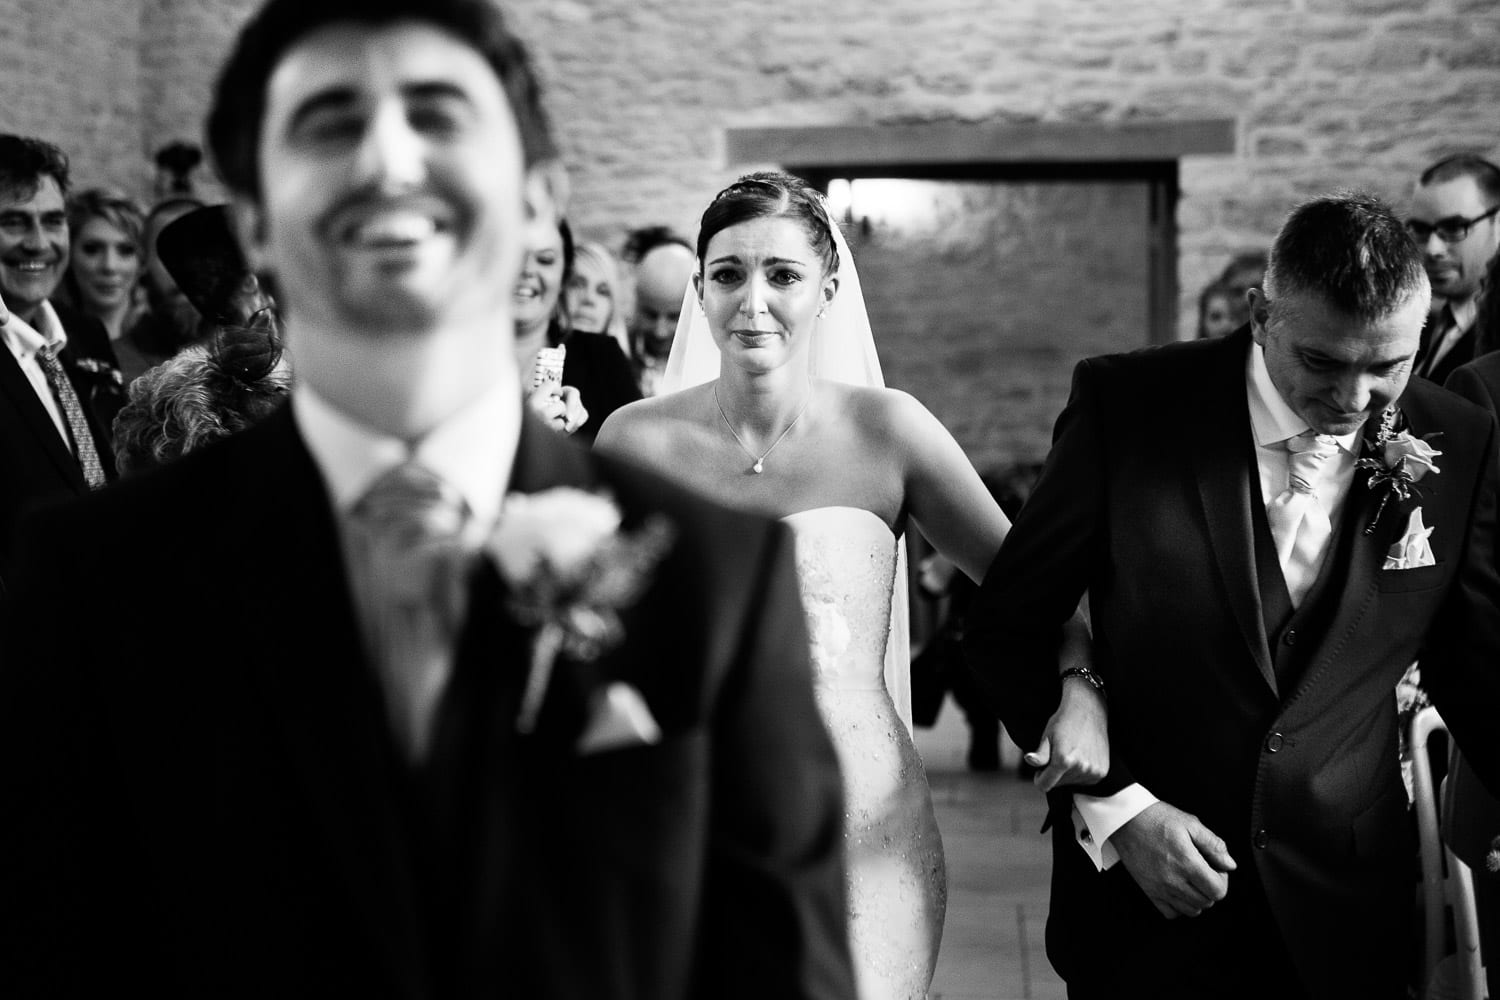 The groom laughs and the bride cries with emotion